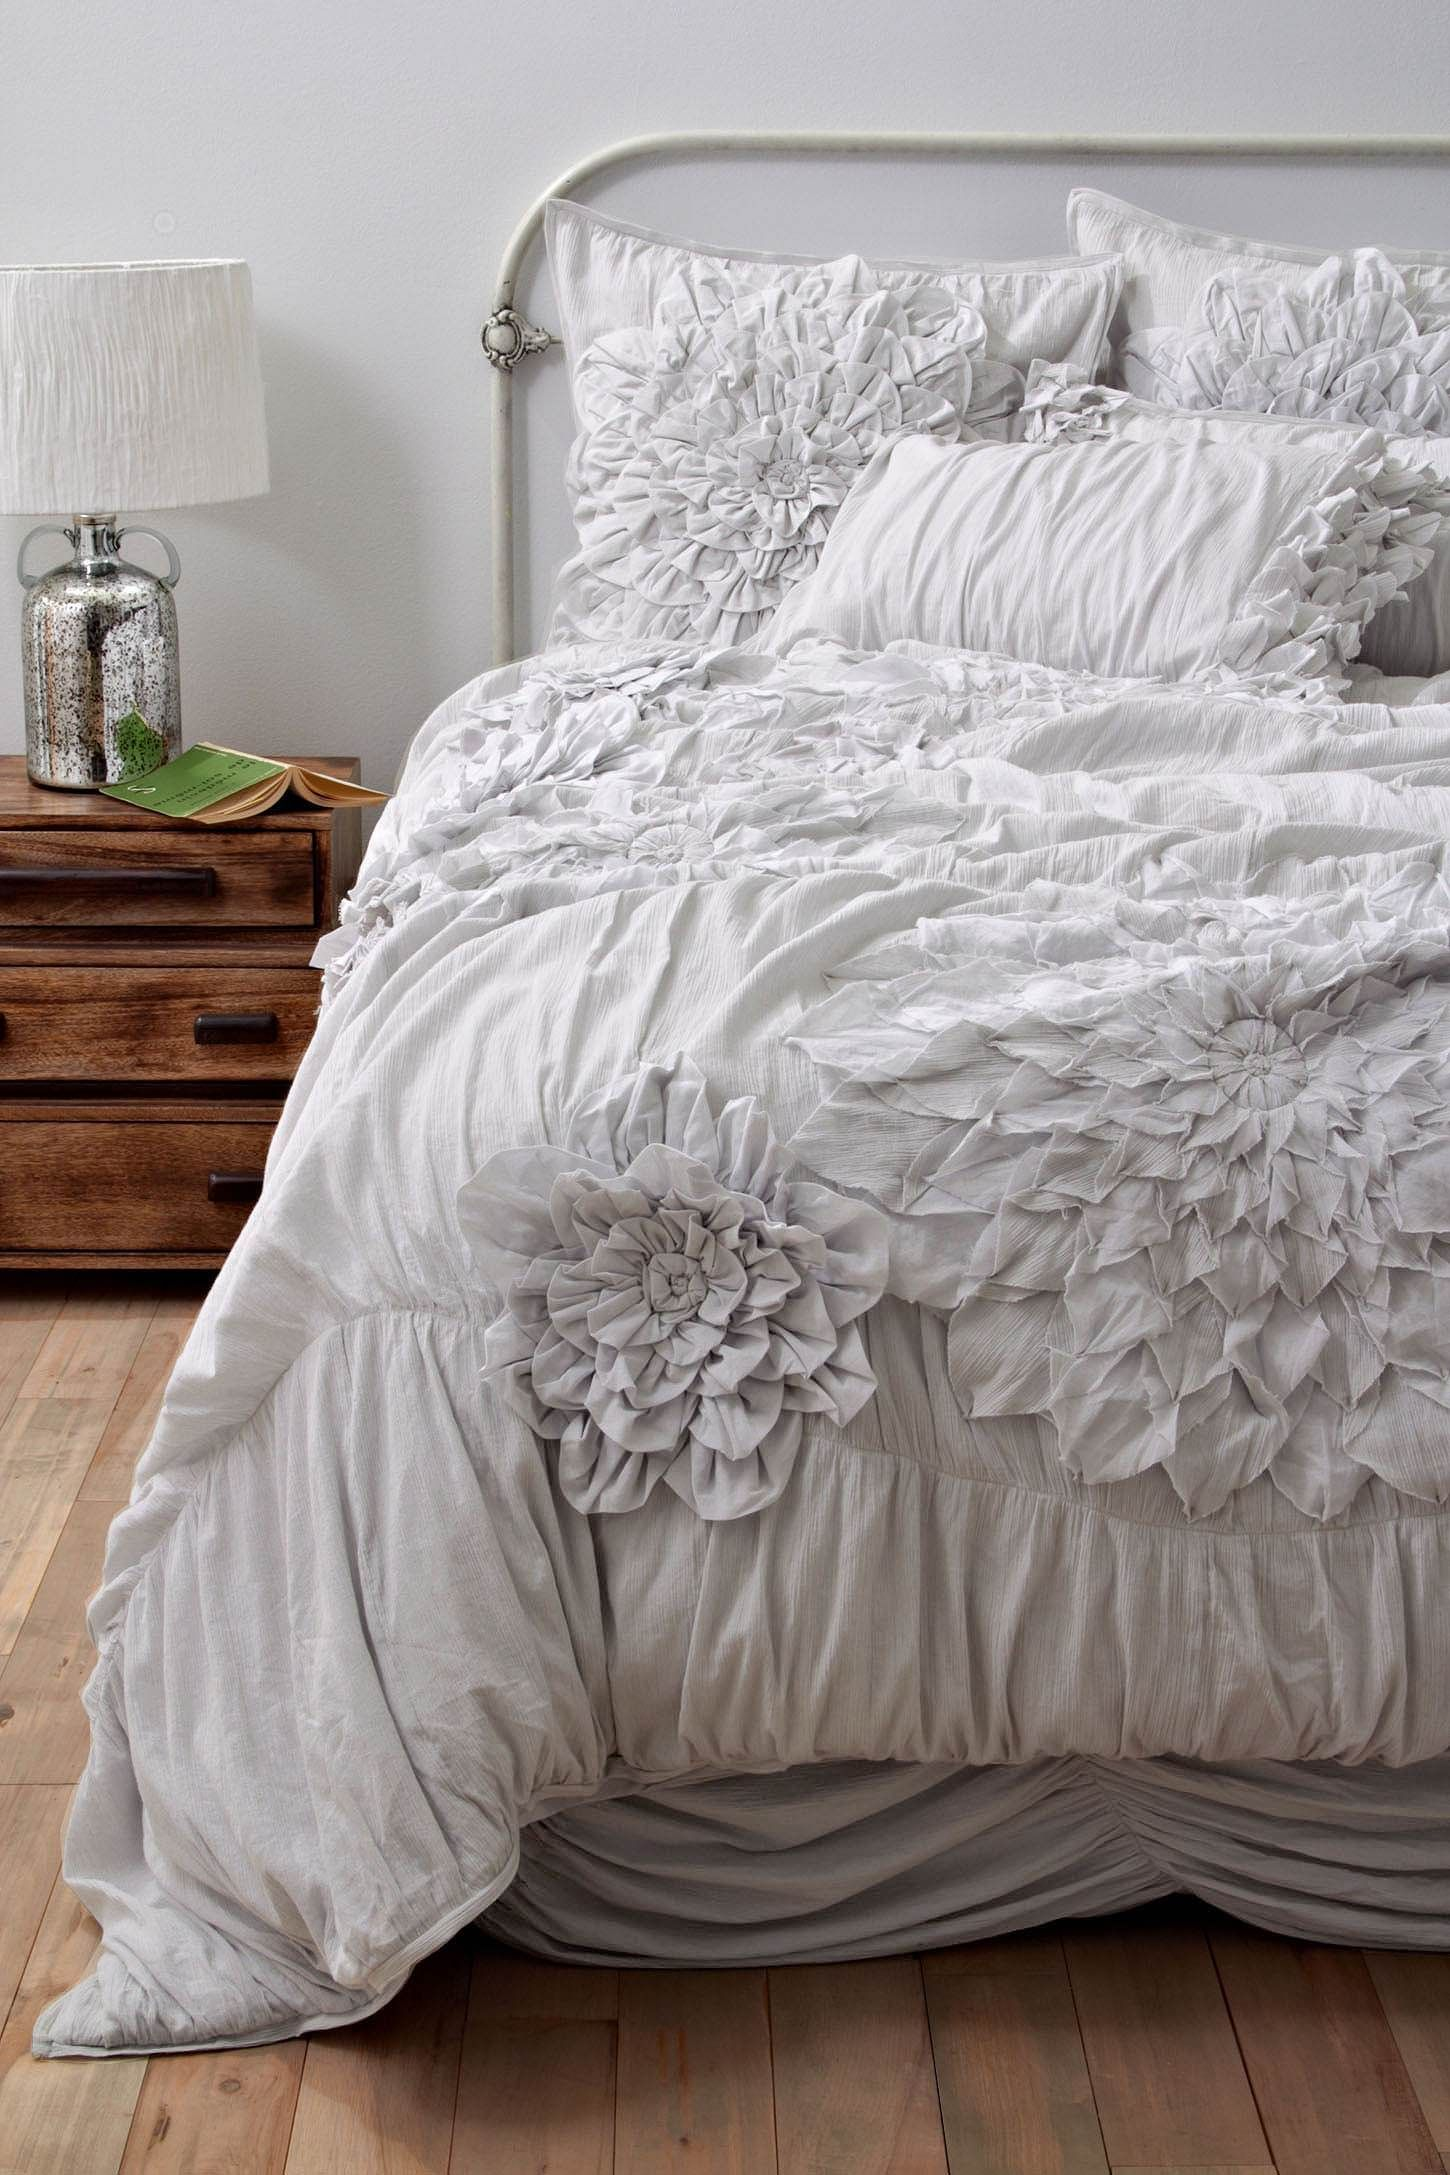 Gorgeous But Not Practical With Dogs Who Sleep In The